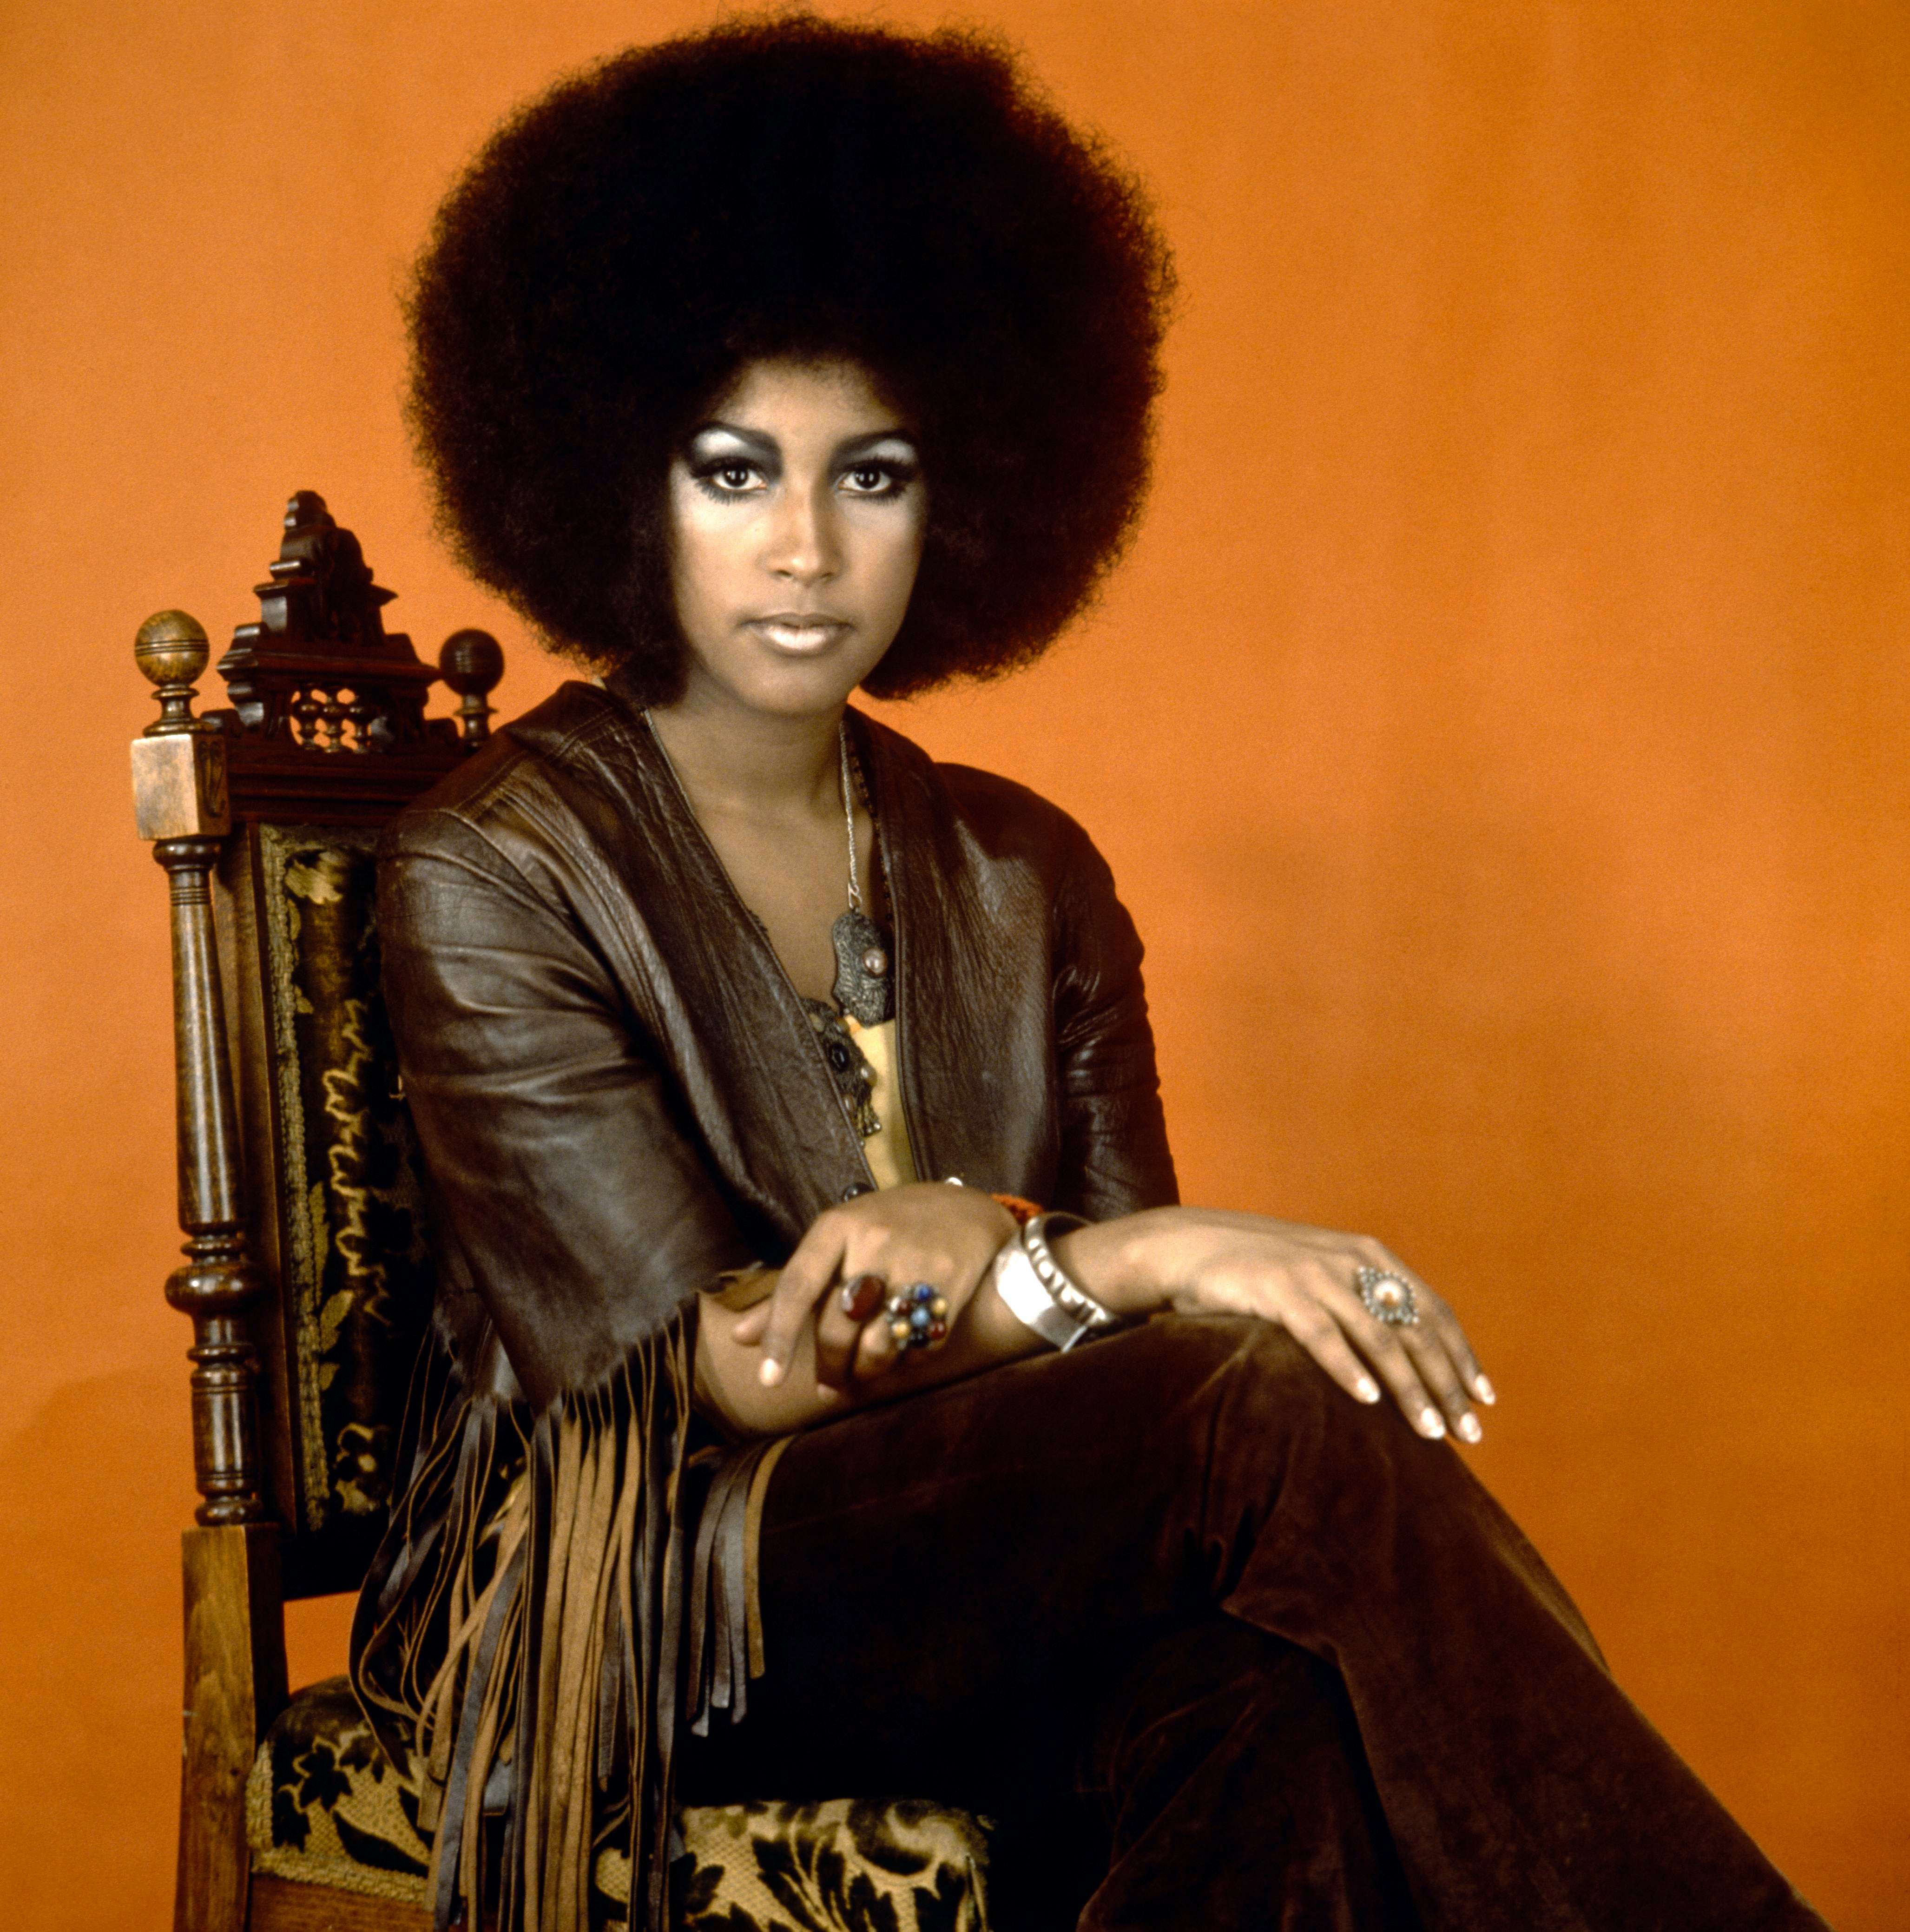 Marsha Hunt: MGM let me play absolutely everything, the